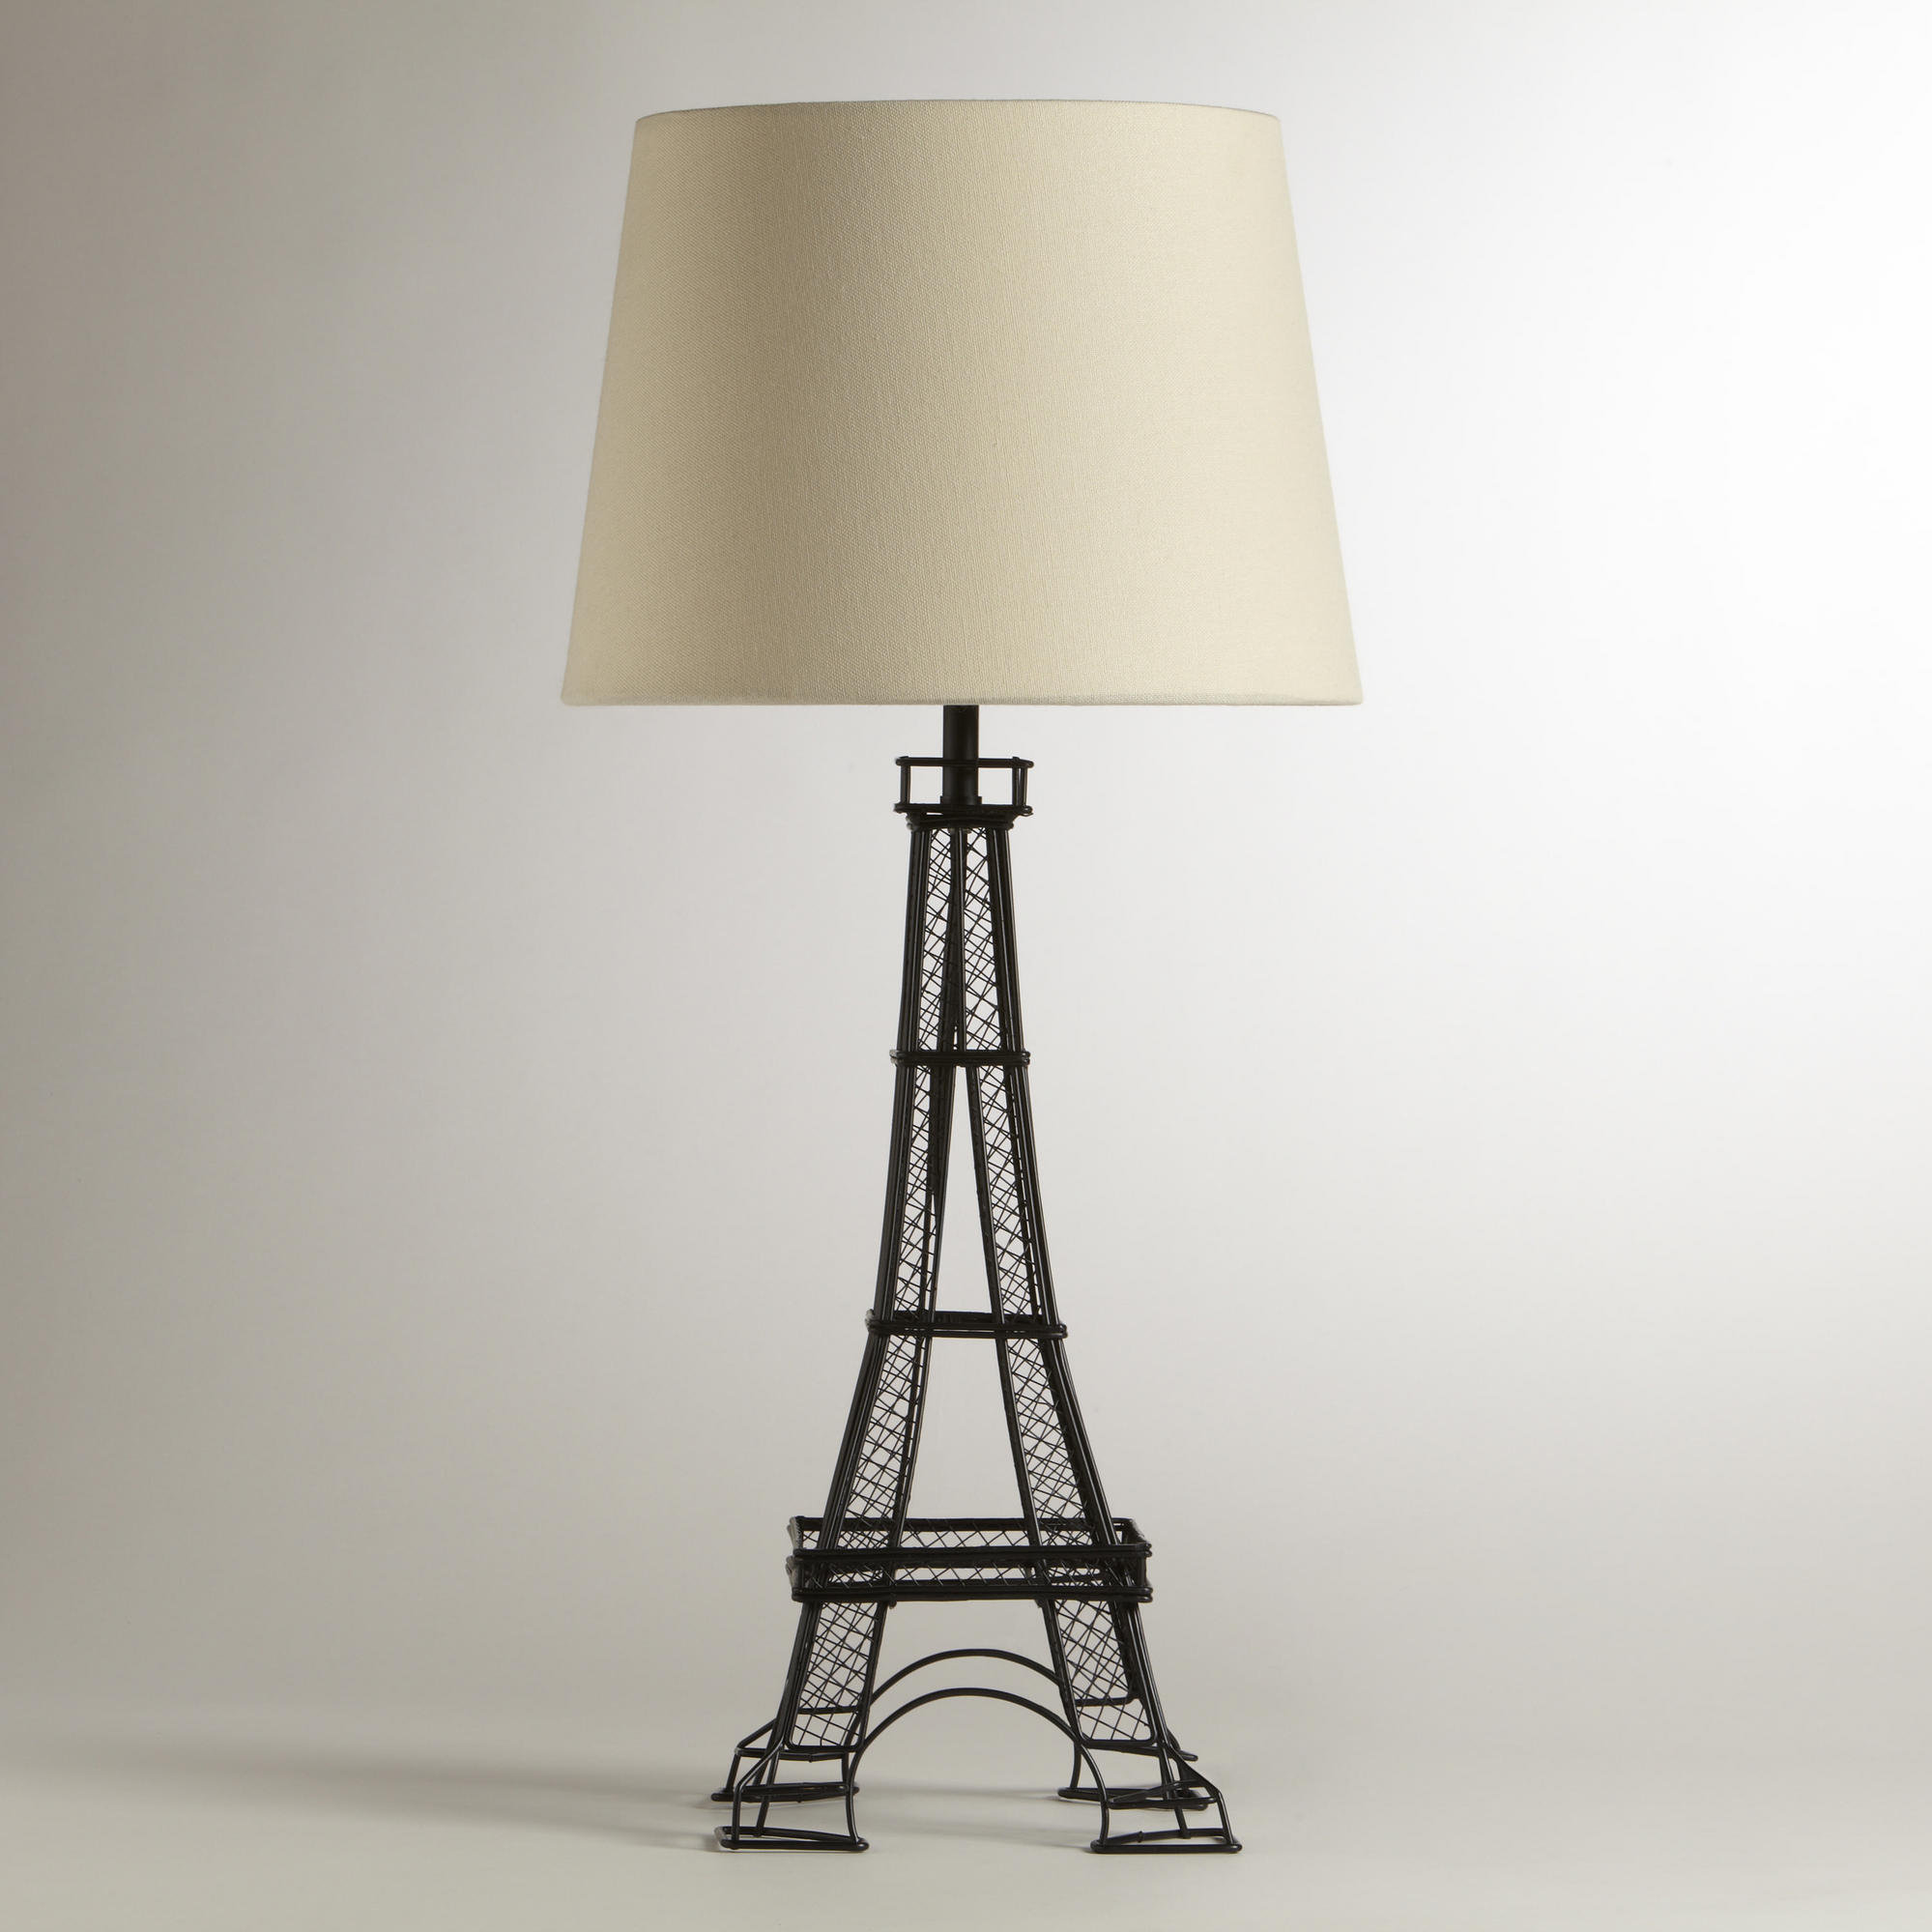 Worldmarket table eiffel tower table lamp world market worldmarket table eiffel tower table lamp world geotapseo Image collections